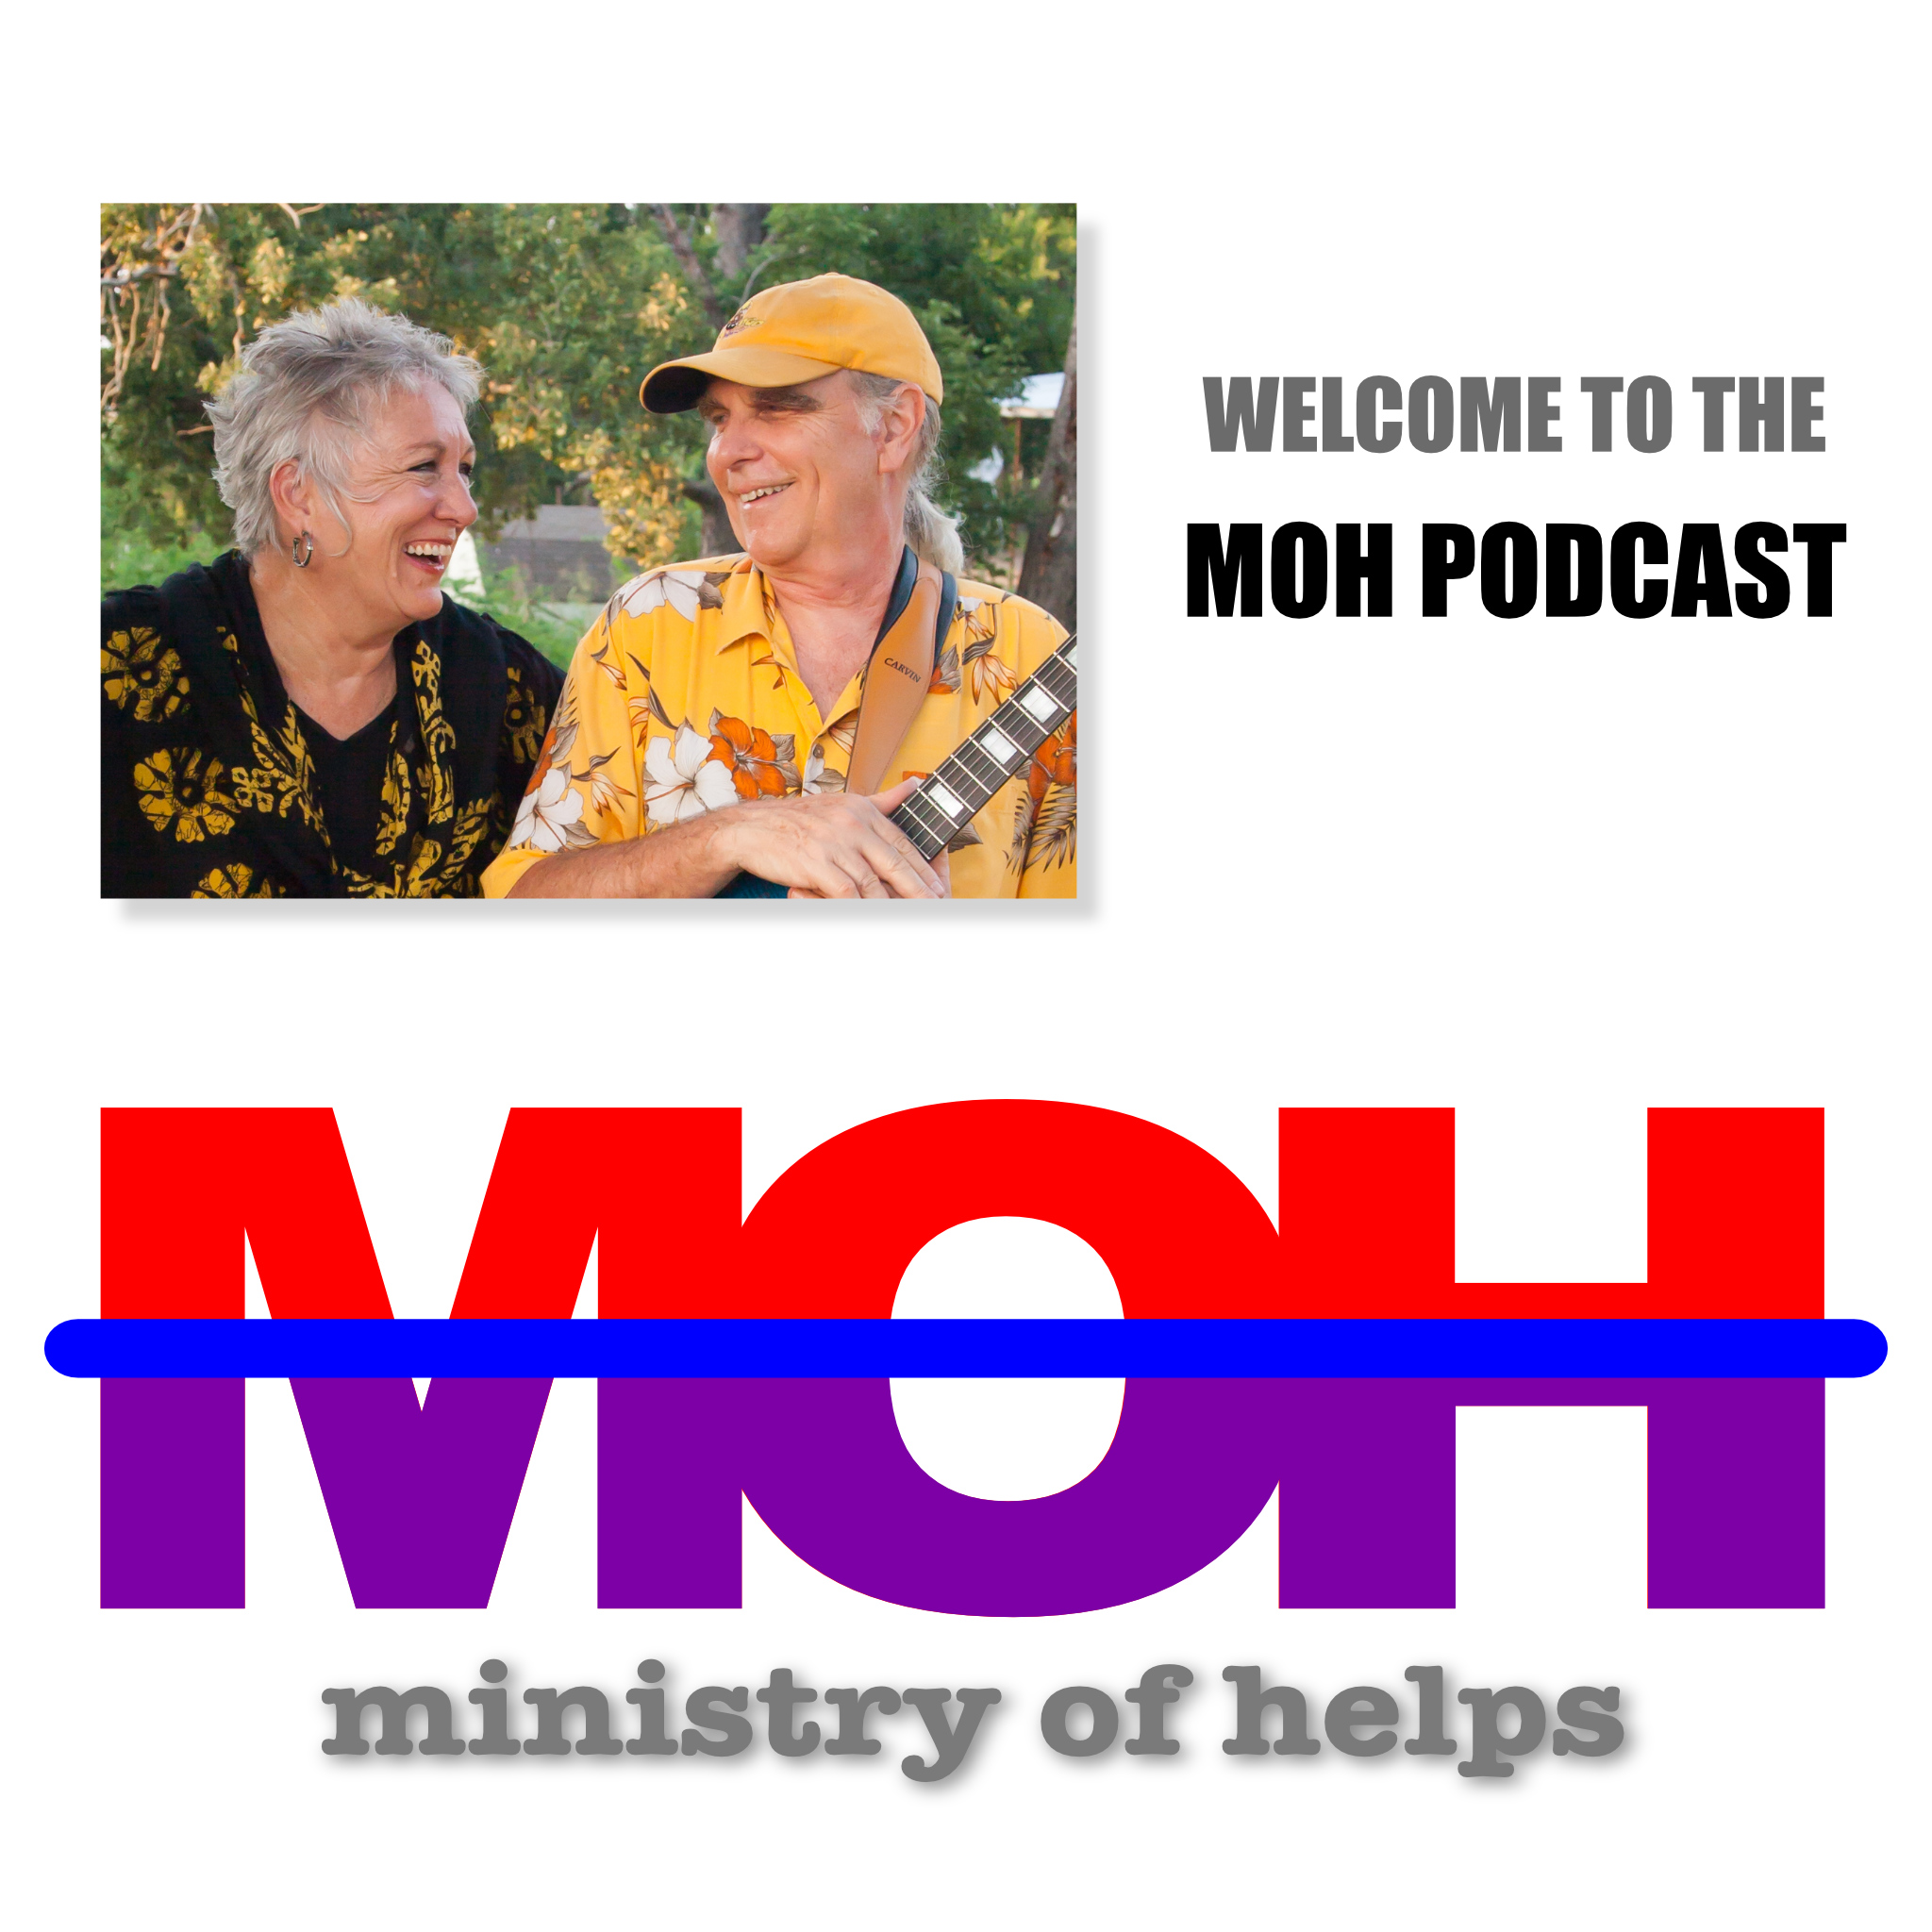 The MOH Podcast